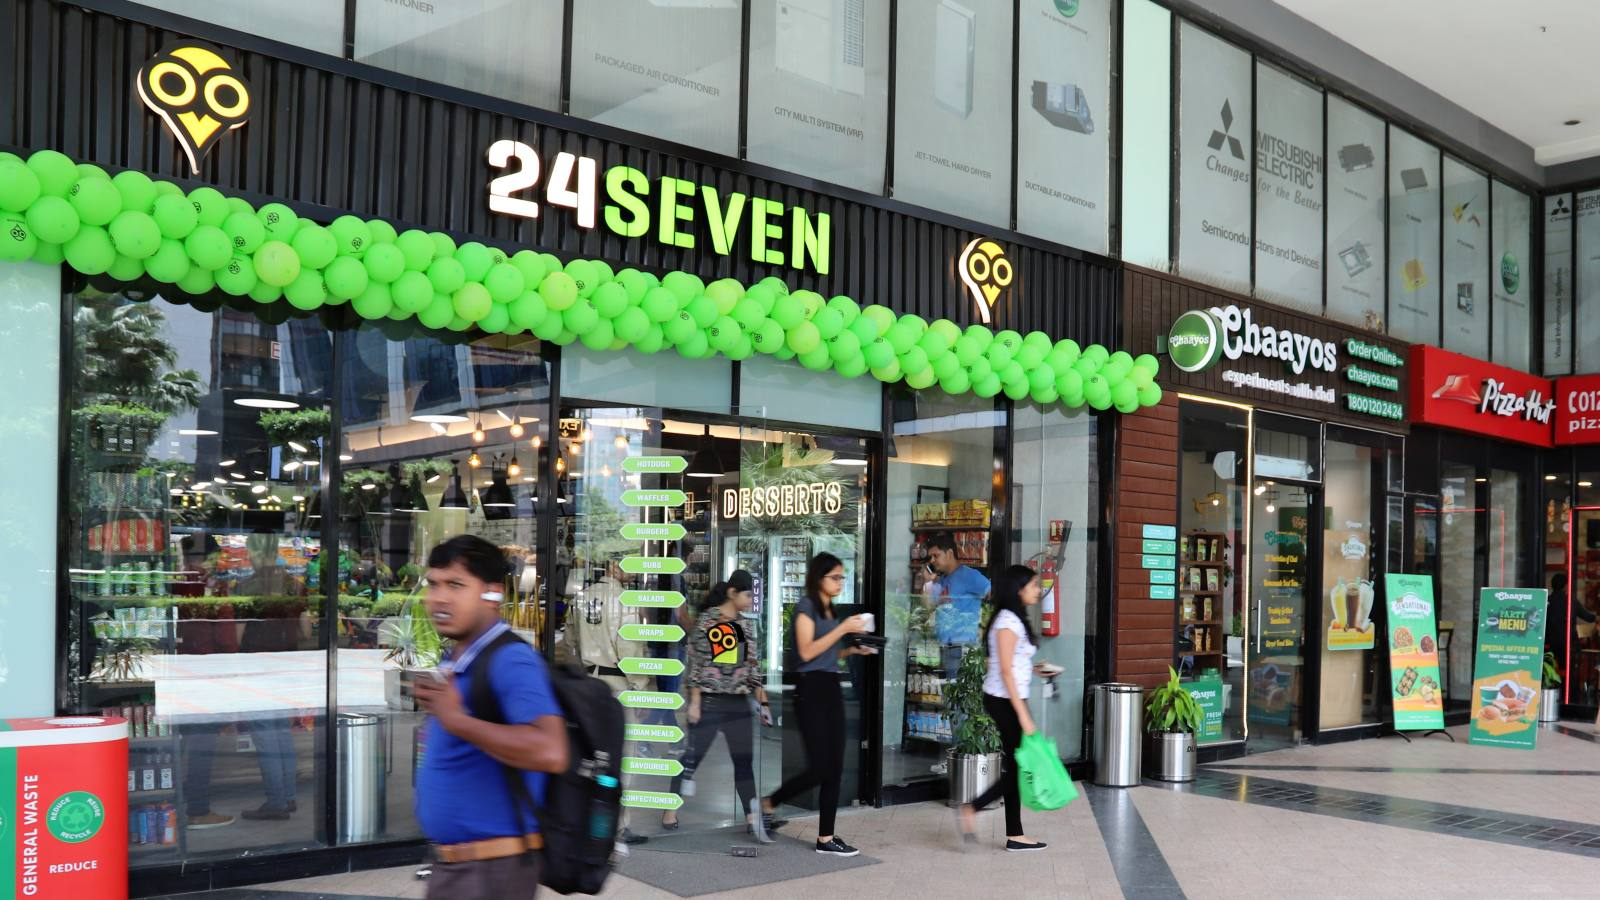 A 24Seven store in a New Delhi suburb. Godfrey Philips India, which operates the 24Seven chain, is pursuing an aggressive expansion strategy.